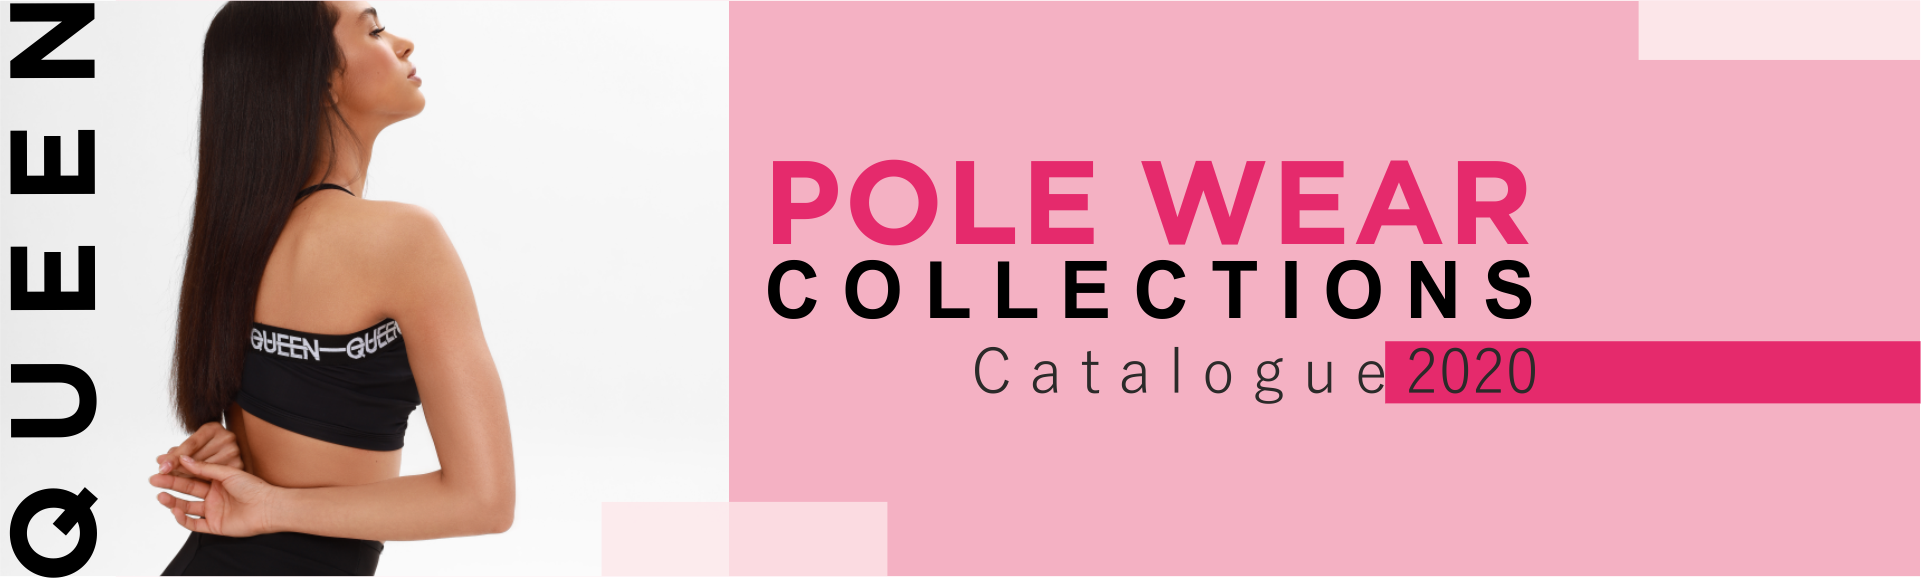 Pole Wear Queen Pole Wear brand